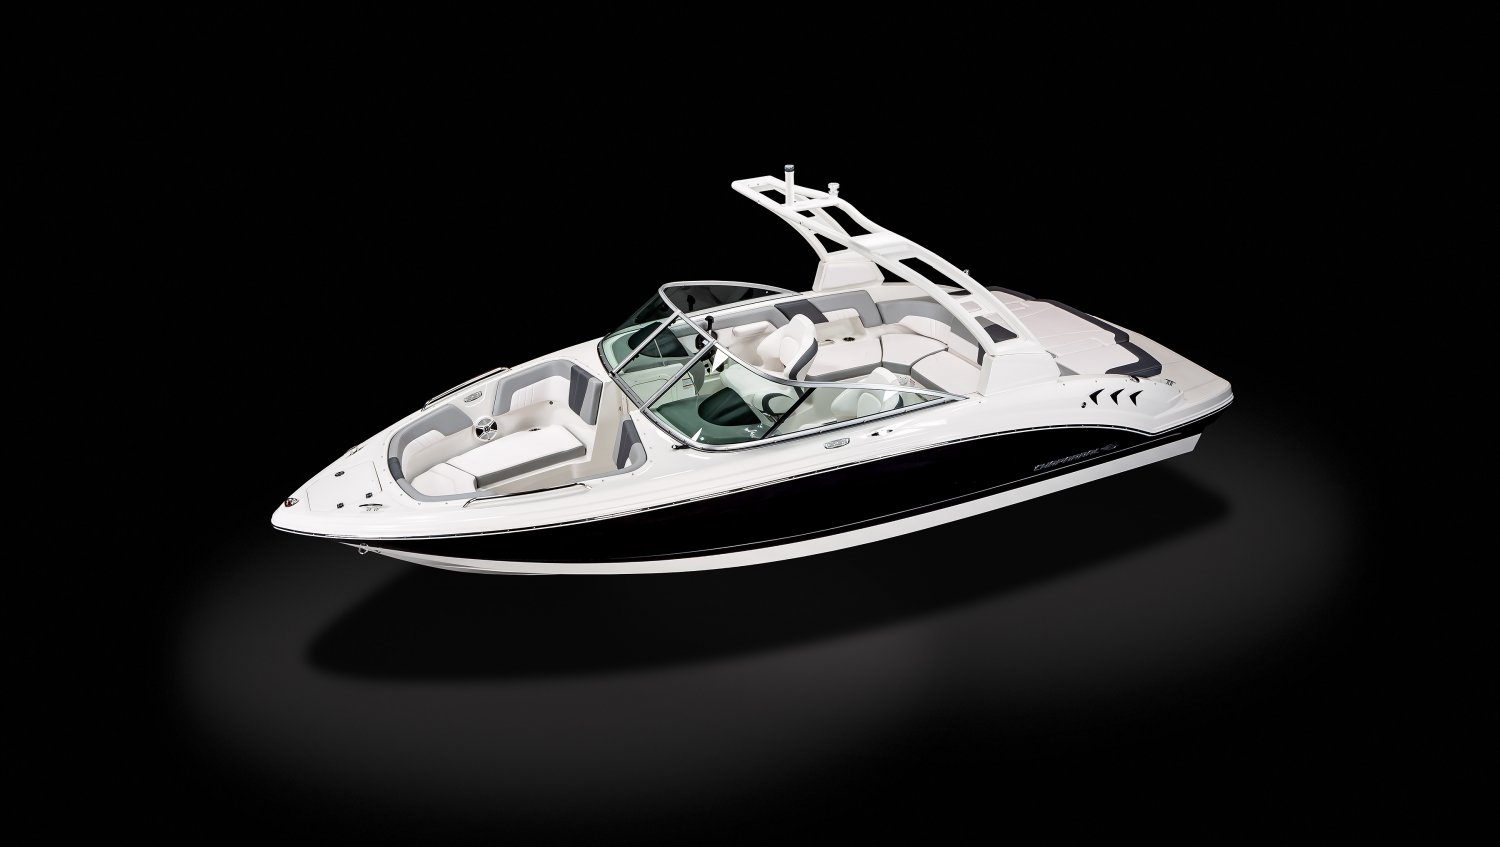 Image of a White 2021 23   Chaparral Boats. Our track record speaks for itself. Seeing Chaparral on top when it comes to performance, styling, value and innovation should come as no surprise... we've won more than 30 awards for product excellence, a feat few can claim.